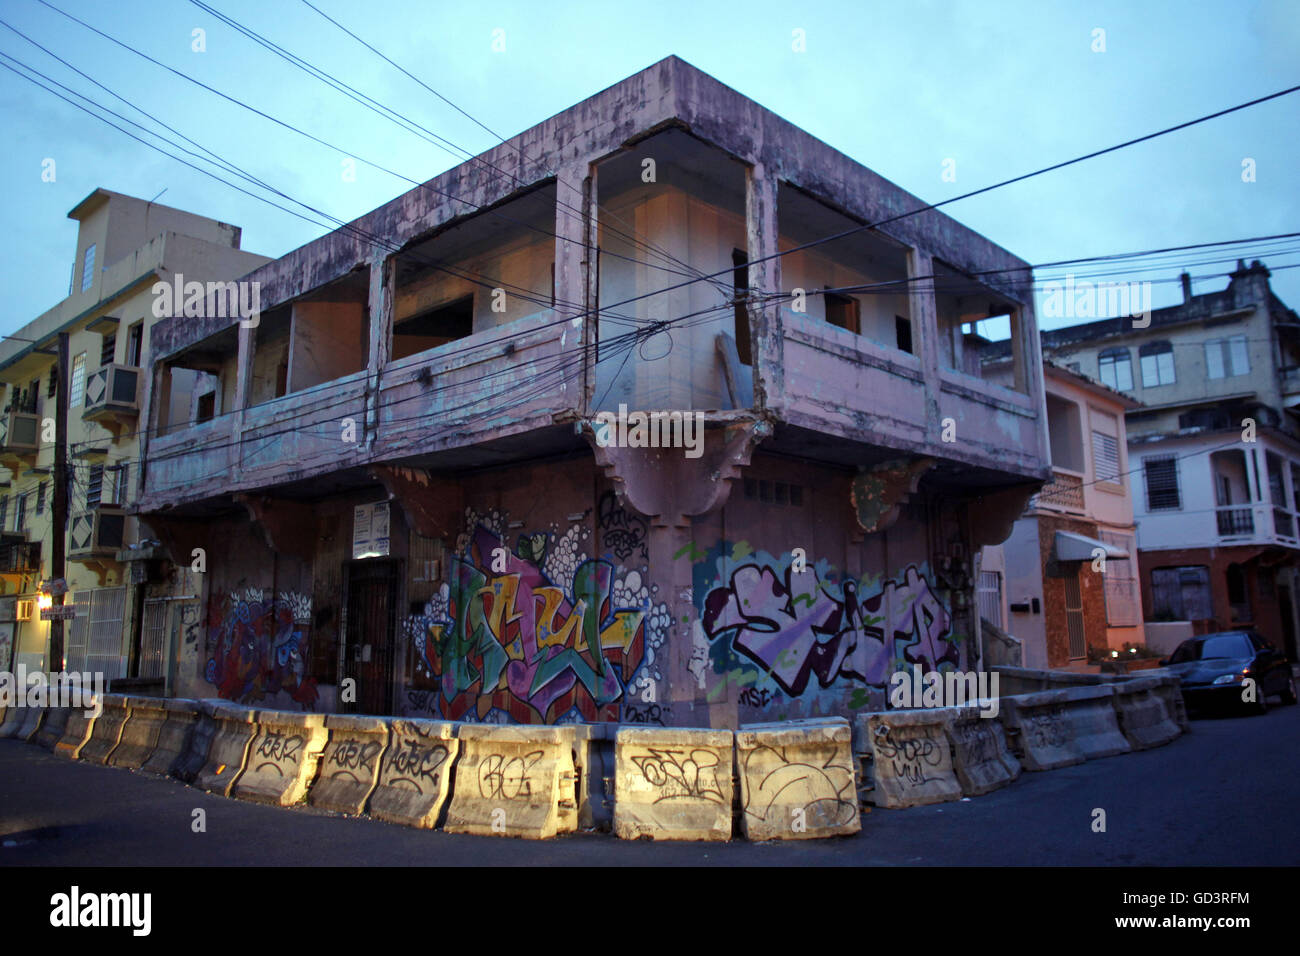 San Juan, Puerto Rico. 21st Sep, 2014. An abandoned building declared public nuisance sits waiting to be demolished - Stock Image